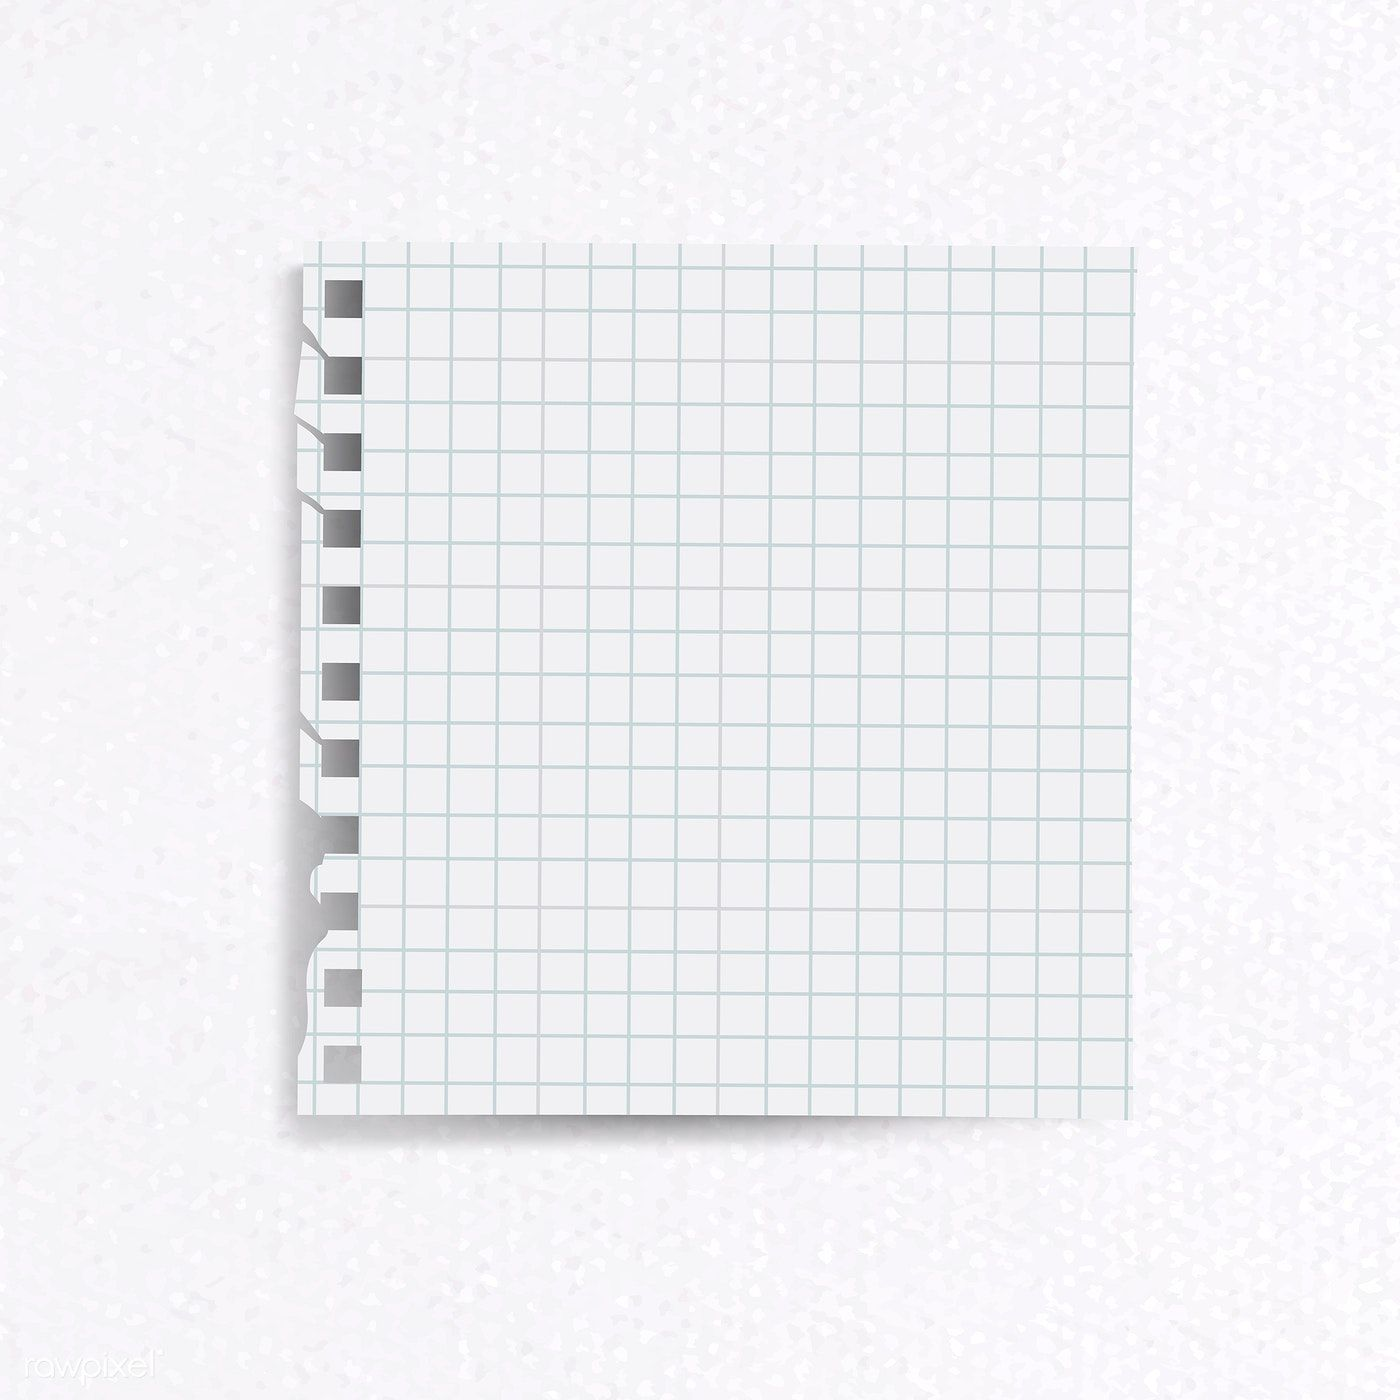 Blank lined notepaper on textured paper background